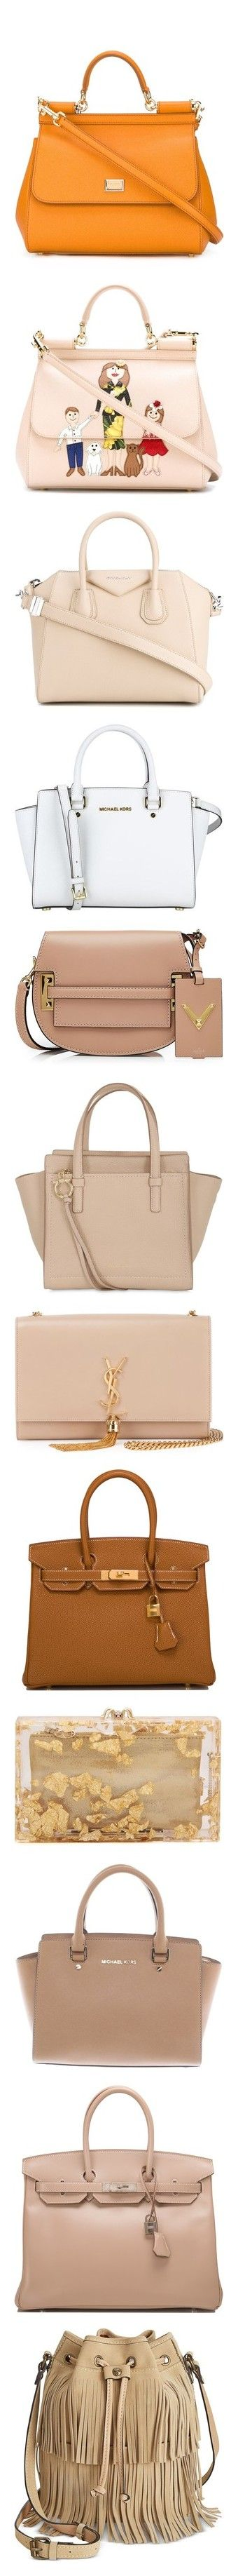 """Handbags 2"" by pihli-sa ❤ liked on Polyvore featuring bags, handbags, tote bags, orange purse, leopard print tote bag, orange tote bag, handbags totes, tote handbags, multicolor and leather handbags"